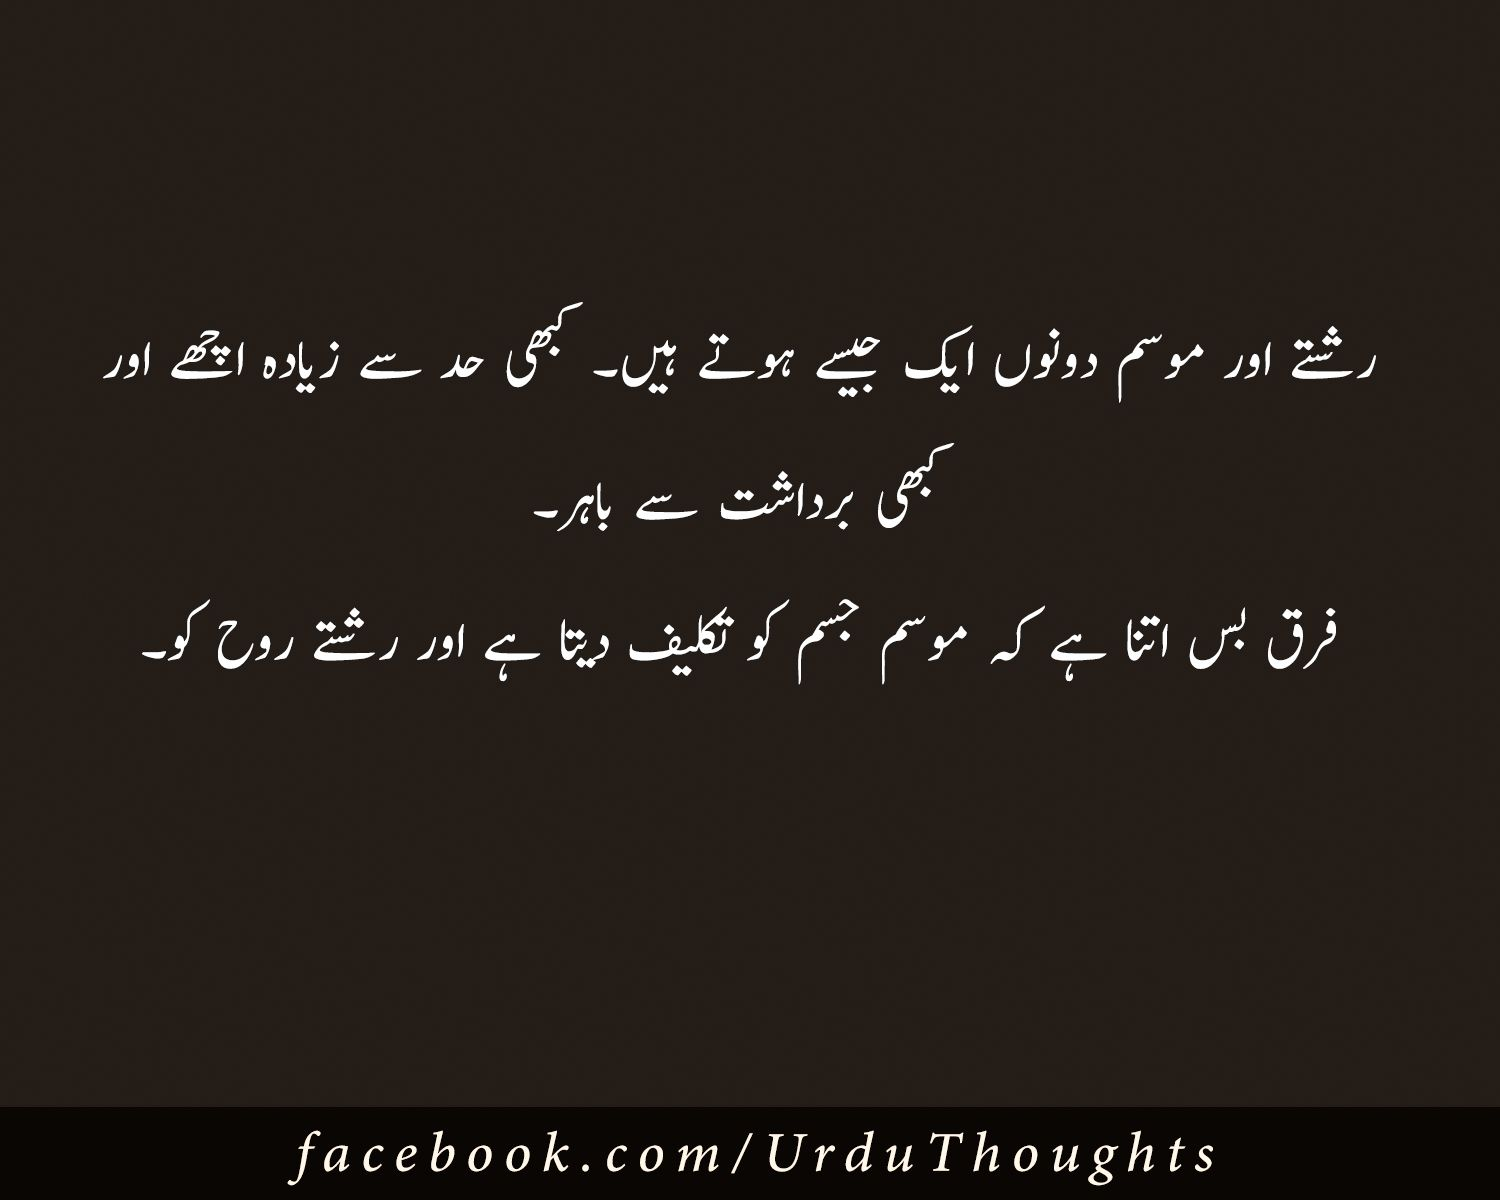 Urdu Thoughts   Urdu thoughts, Amazing quotes, Islamic quotes